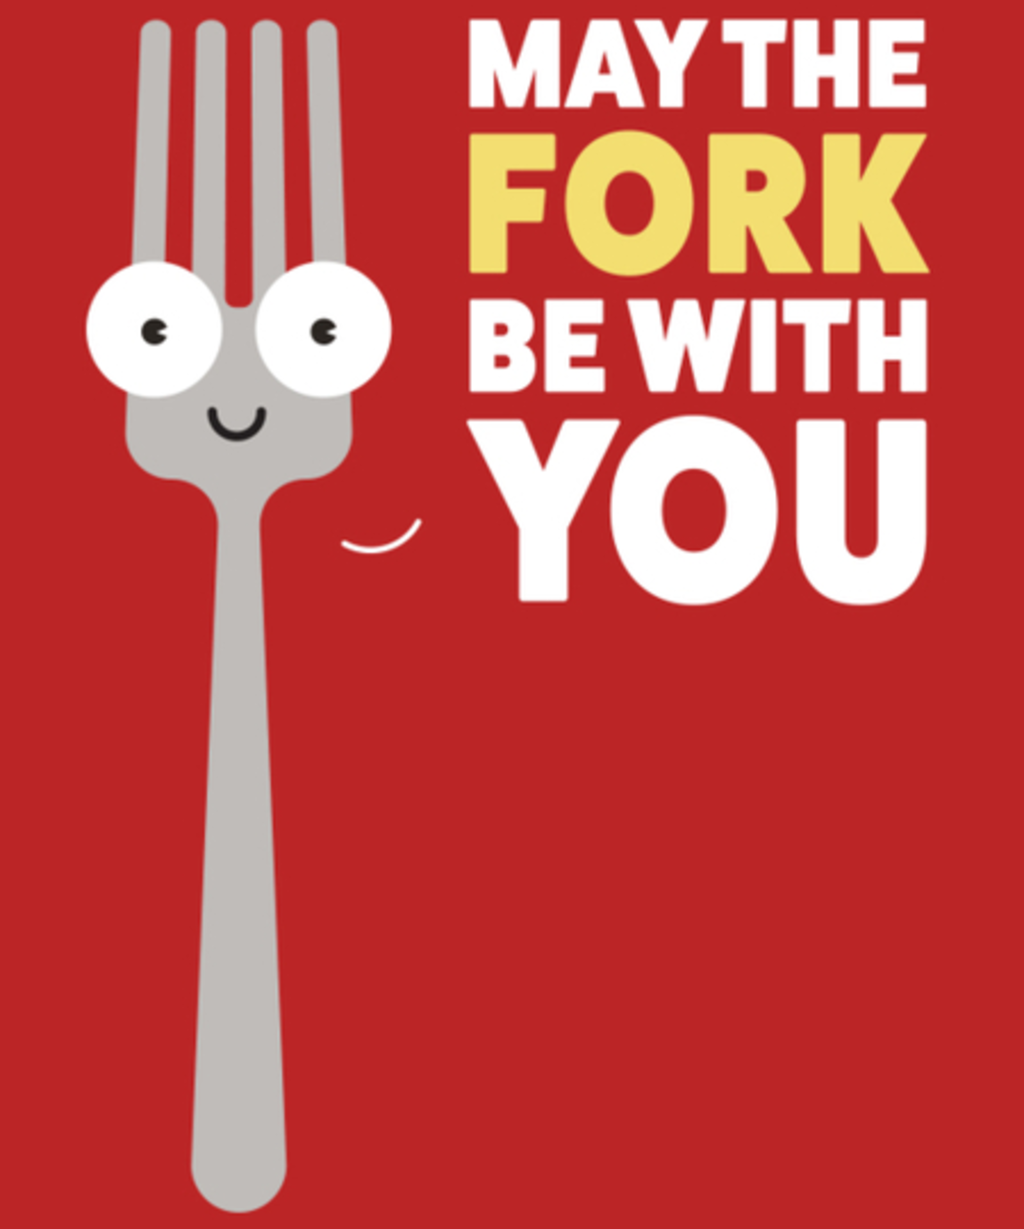 Qwertee: The fork is strong